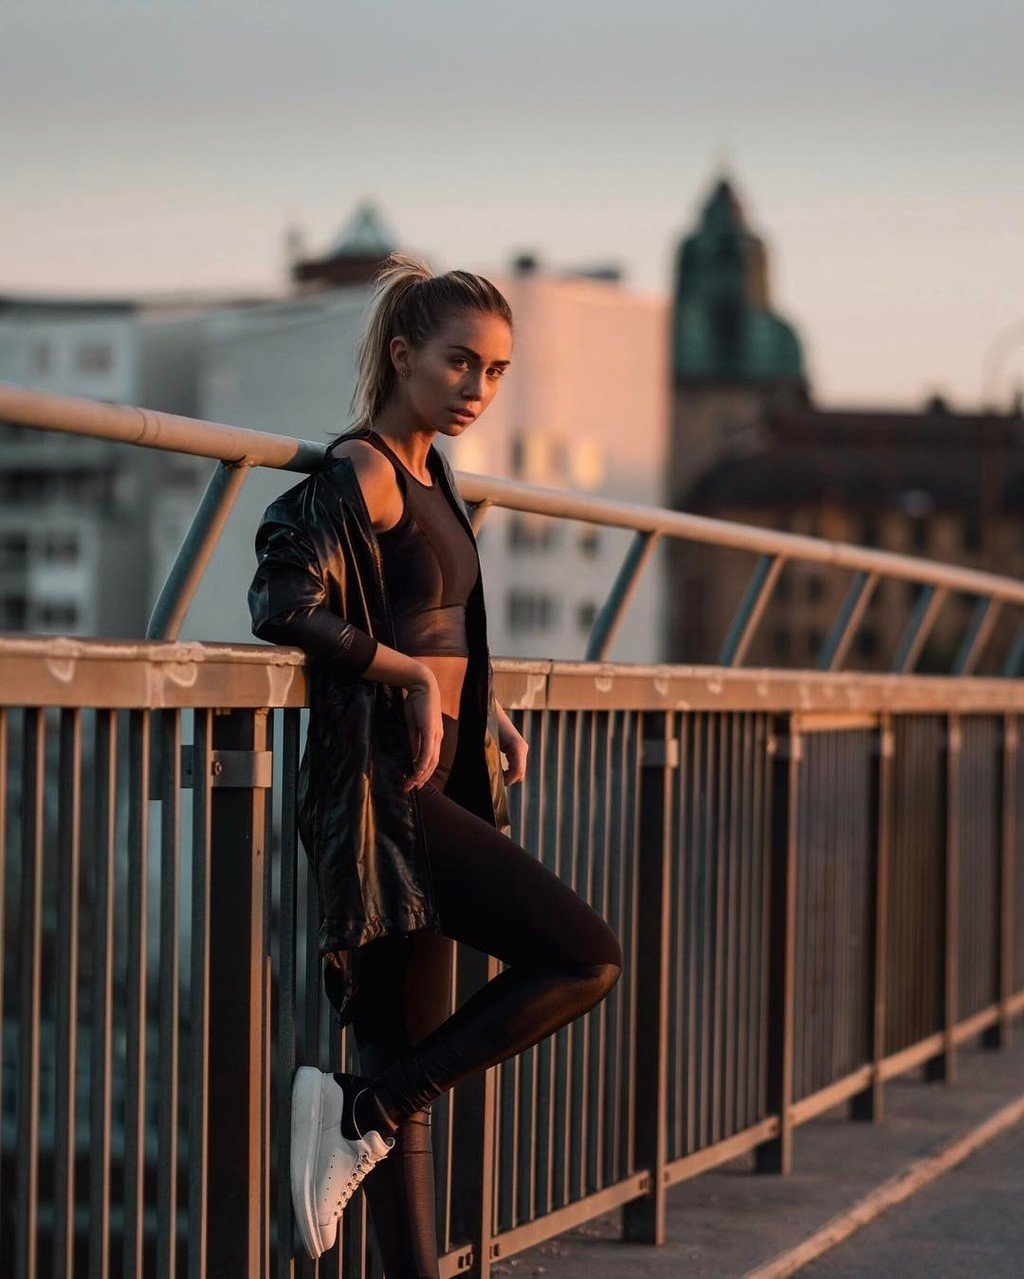 In collaboration with @stadium_pulse - Wearing my Stadium Pulse favorites, this all black set and shiny jacket 🖤Check out www.stadiumpulse.se to shop & see all pieces, my code LISAPULSE will give you 20% off on one order at their webshop until April 26th! xx image